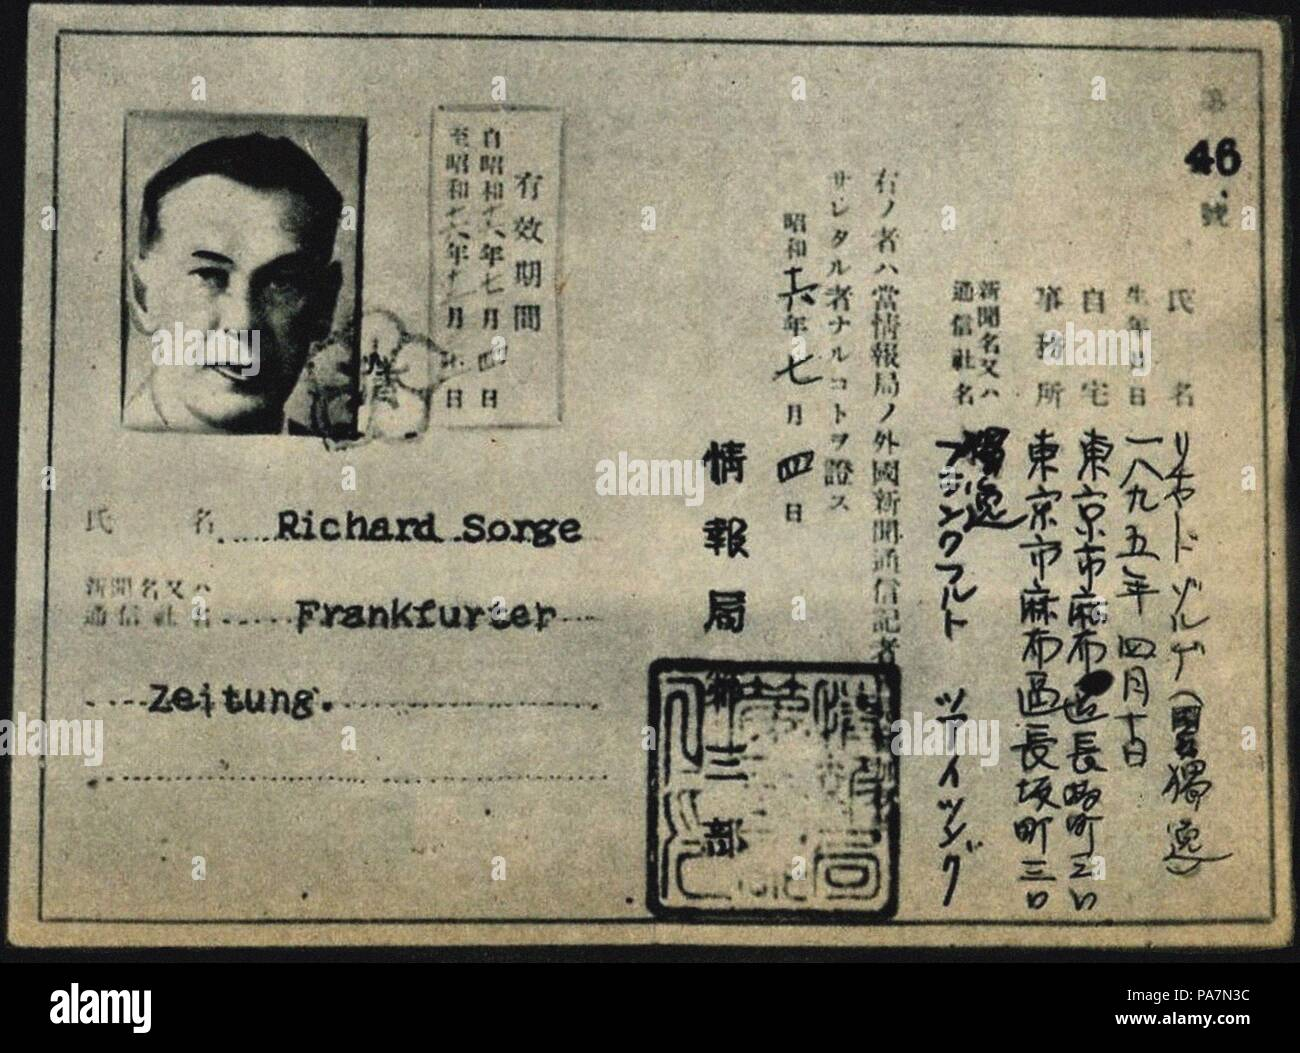 Accreditation card of Richard Sorge. Museum: KGB Museum. - Stock Image